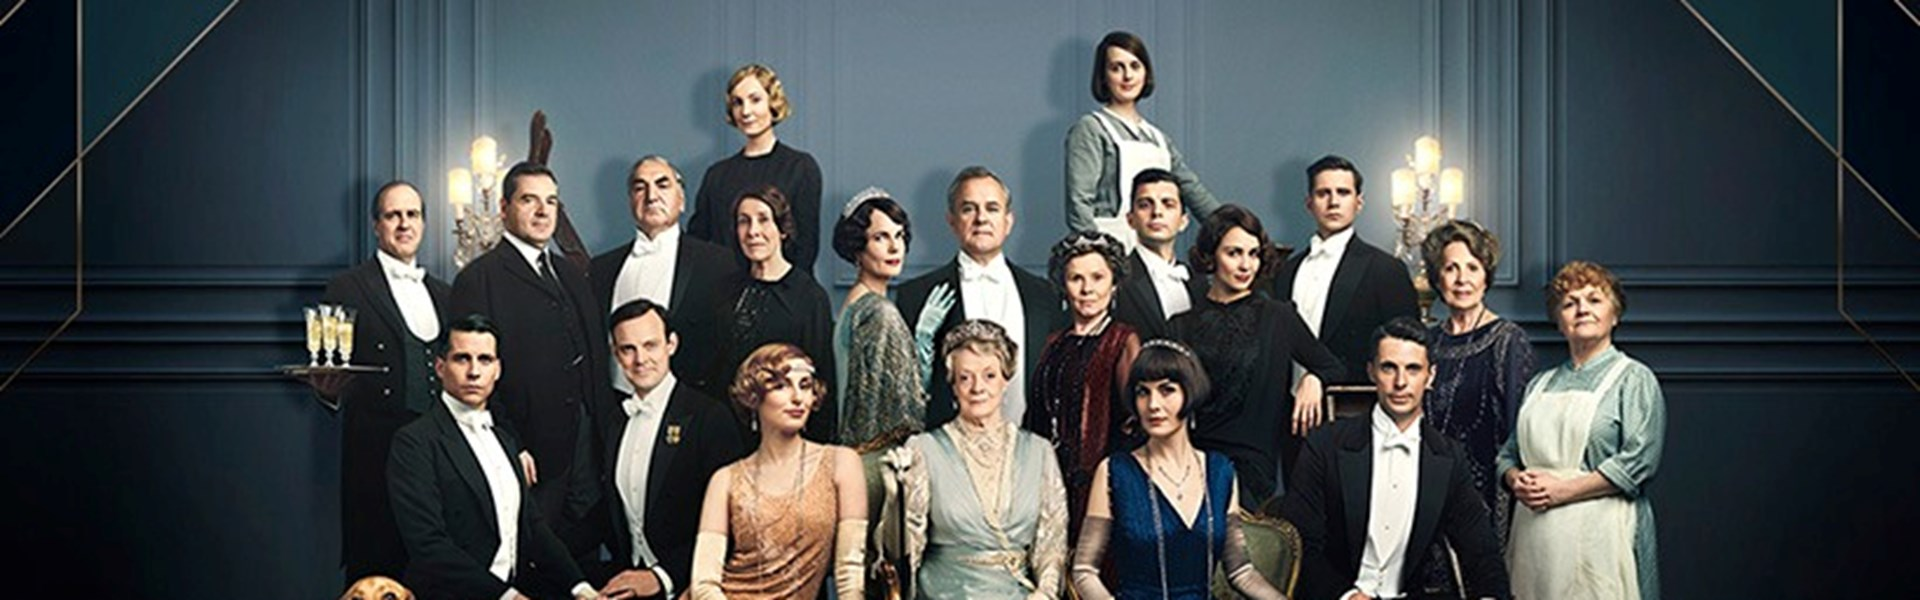 FILM: Downton Abbey